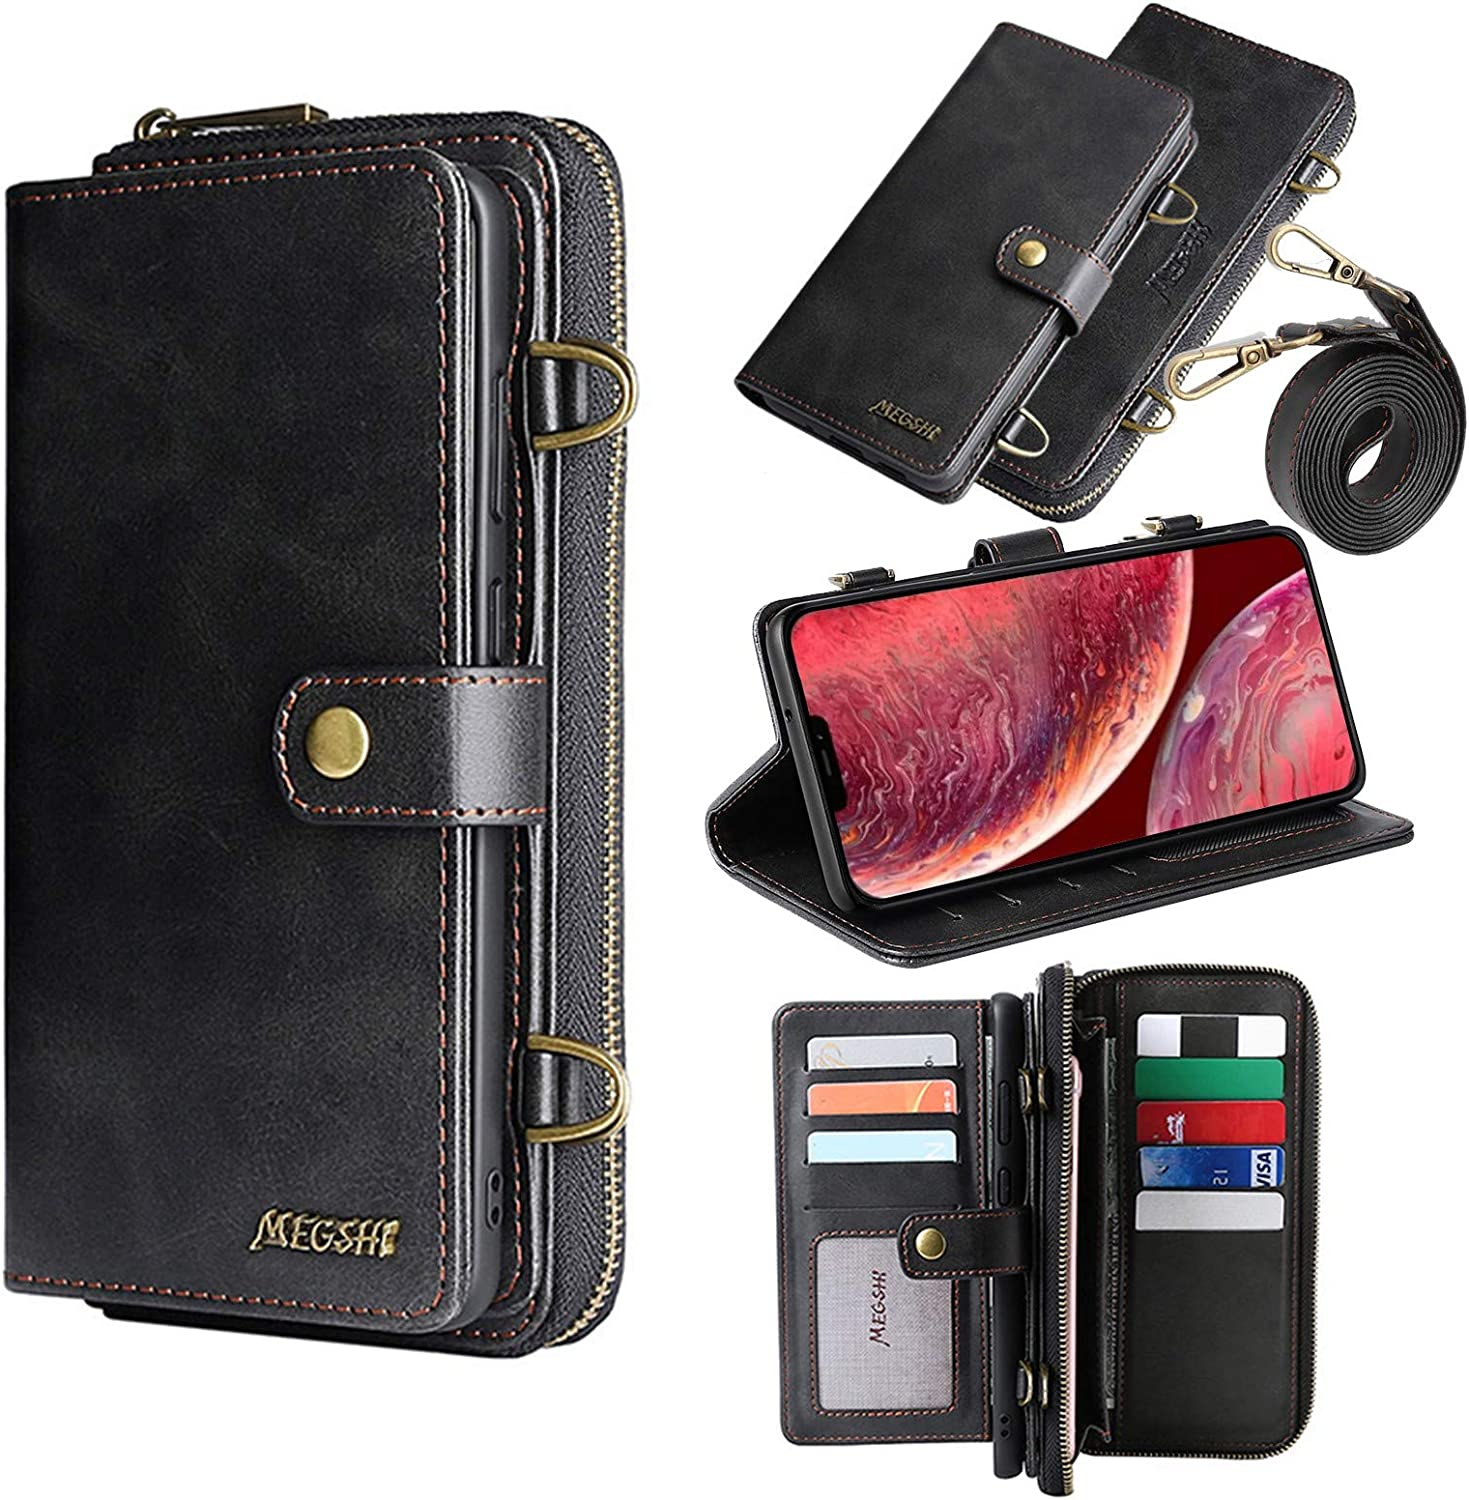 XRPow Wallet Case for iPhone 12 Pro Max 6.7